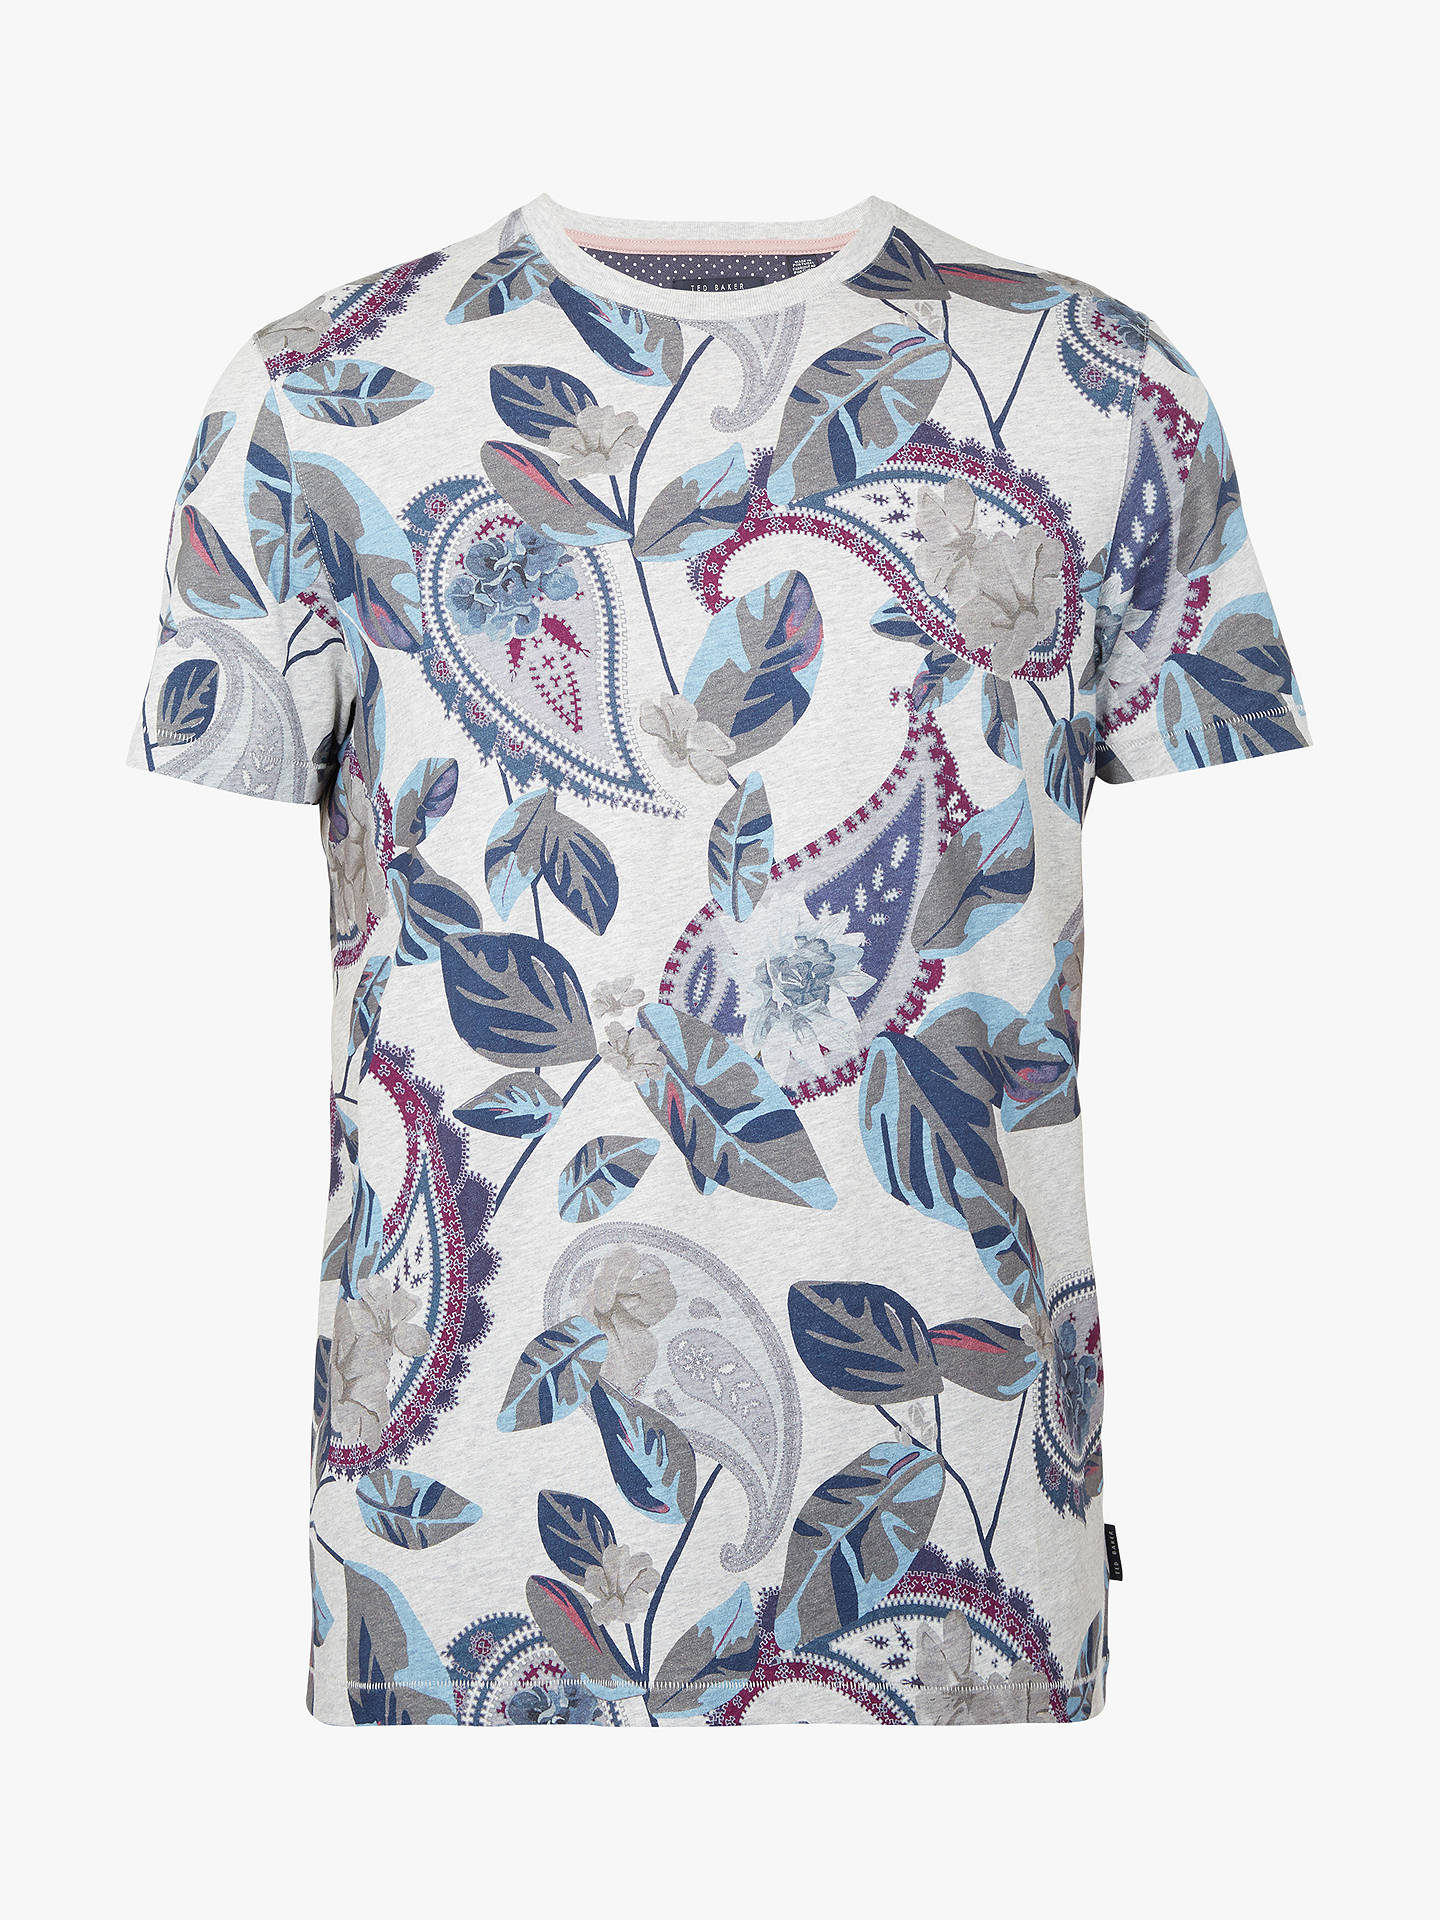 BuyTed Baker Lewii T-Shirt, Grey, 3 Online at johnlewis.com